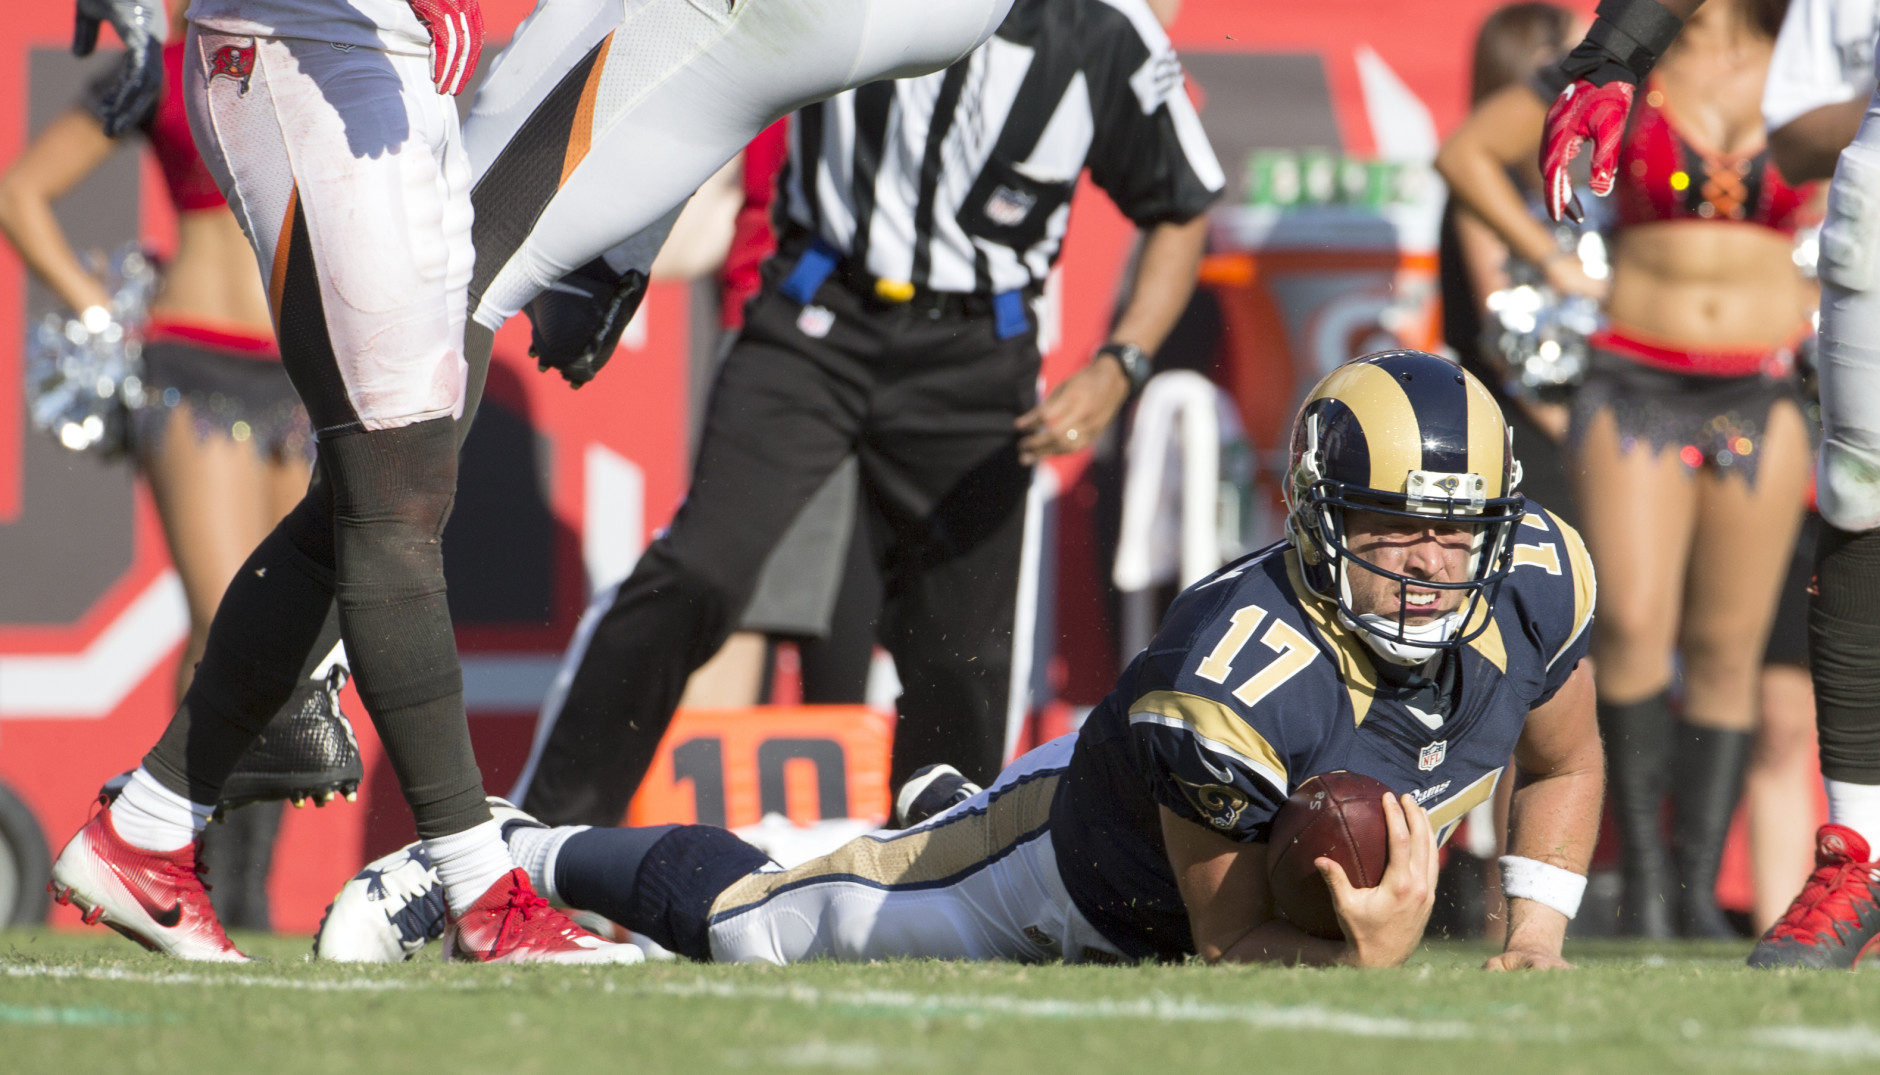 TAMPA, FL - SEPTEMBER 25:  Los Angeles Rams quarterback Case Keenum #17 looks to make sure he made a first down during the first half of their NFL football game against the Tampa Bay Buccaneers at Raymond James Stadium on September 25, 2016 in Tampa, Florida. The Rams defeated the Bucs 37-32.   (Photo by Mark Wallheiser/Getty Images)